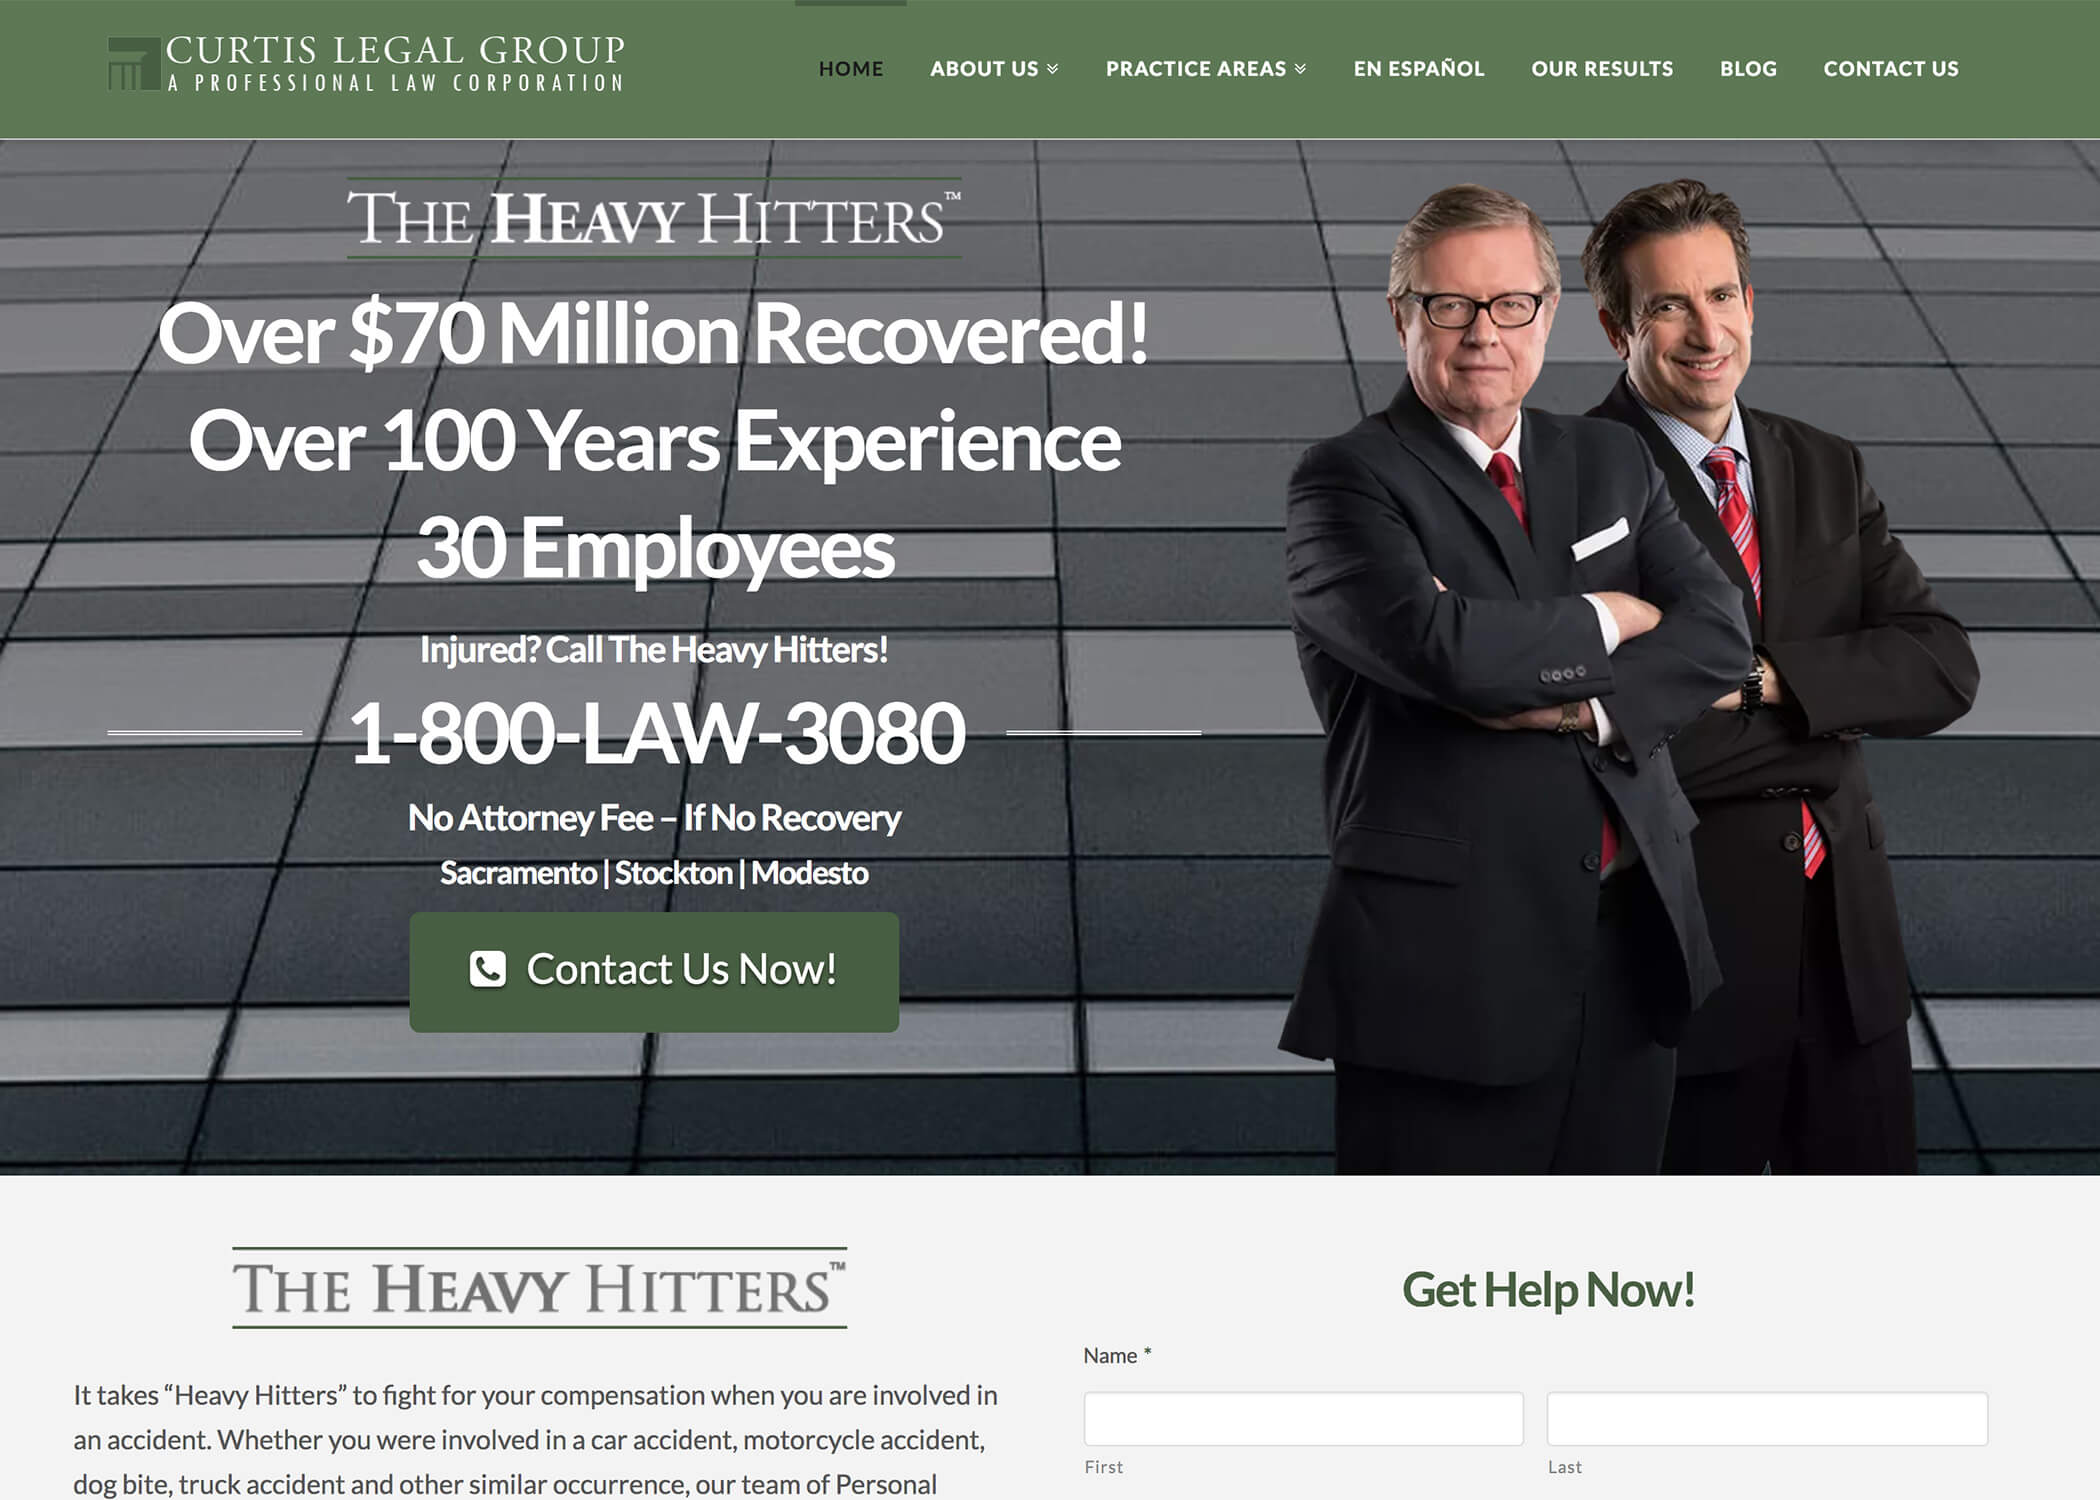 Curtis Legal Group Website